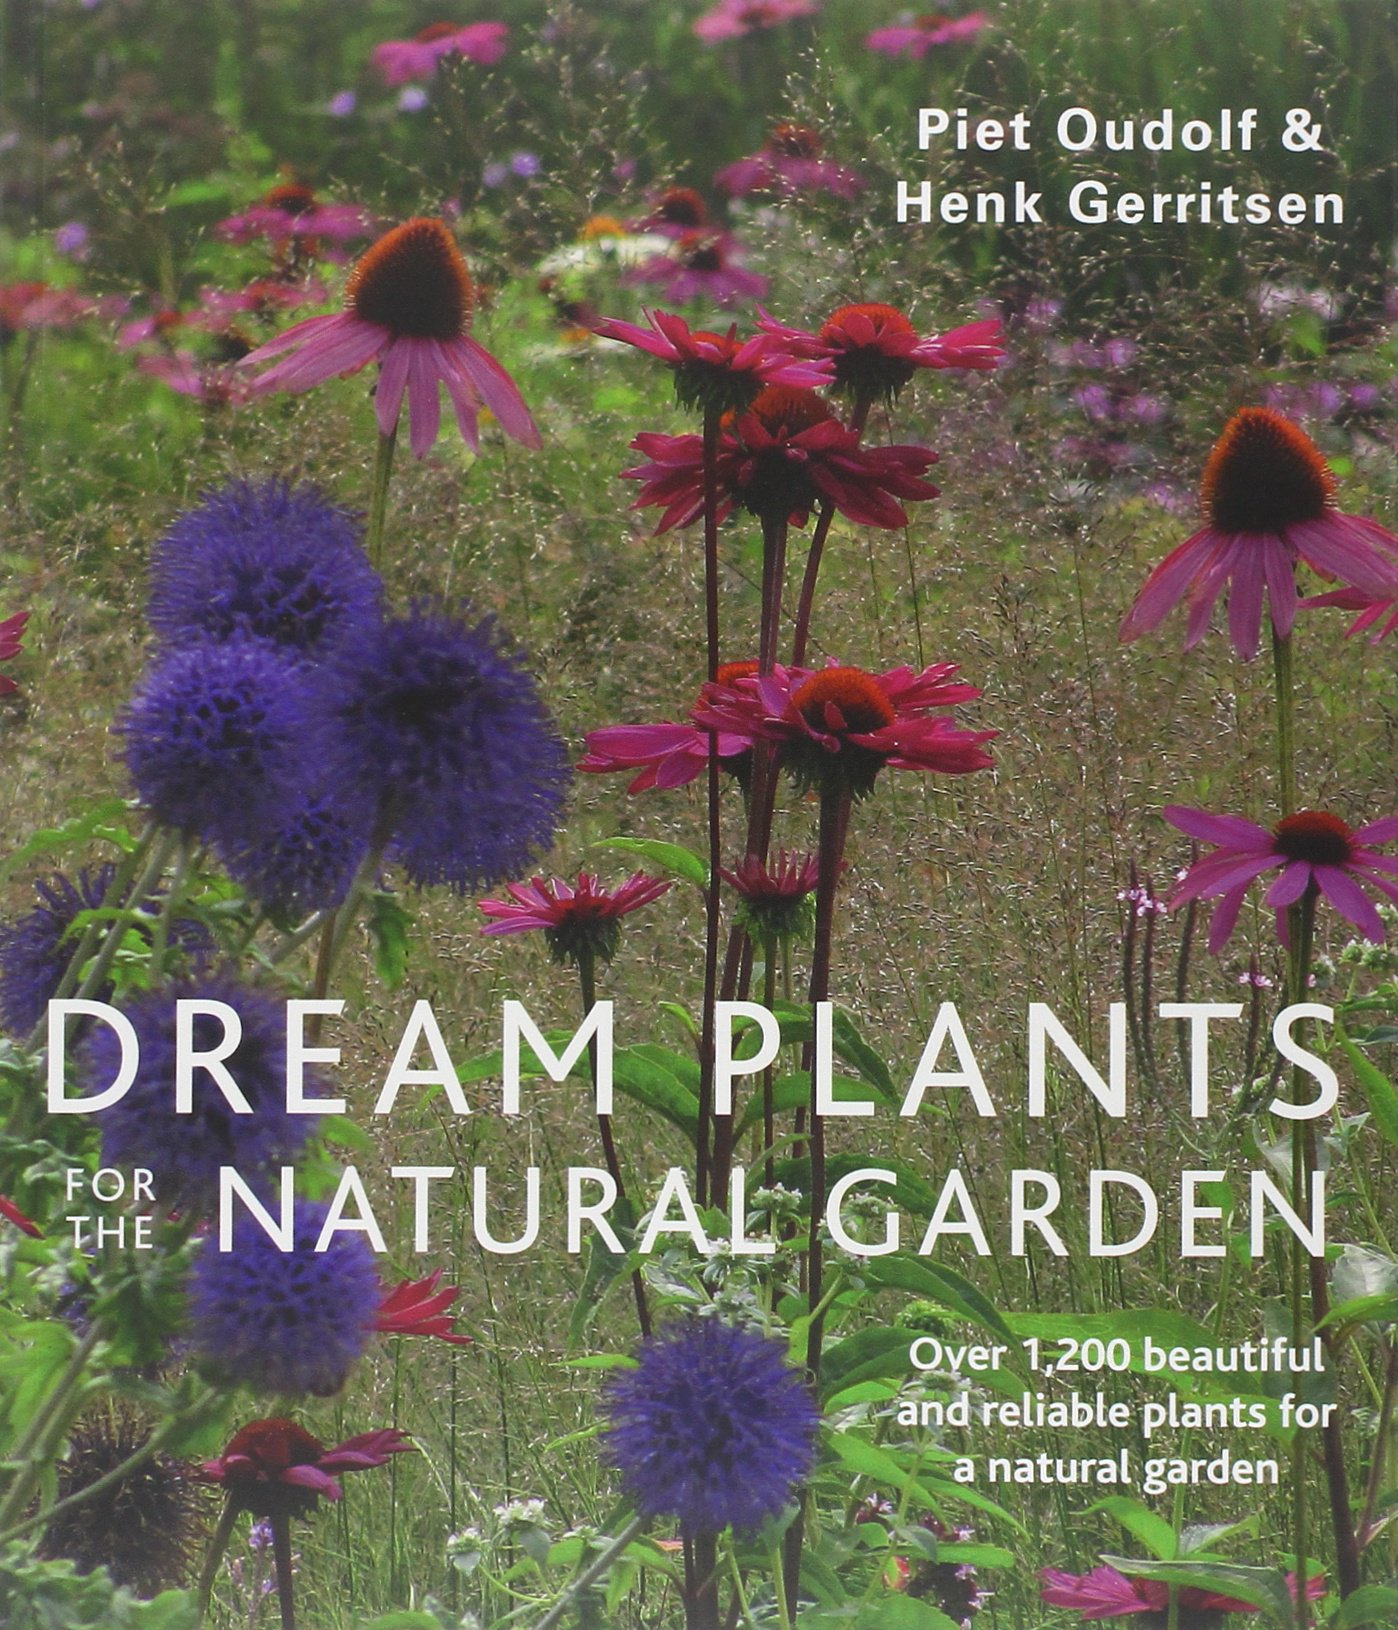 Beautiful natural gardens - Dream Plants For The Natural Garden Piet Oudolf Henk Gerritsen 9780711234628 Amazon Com Books